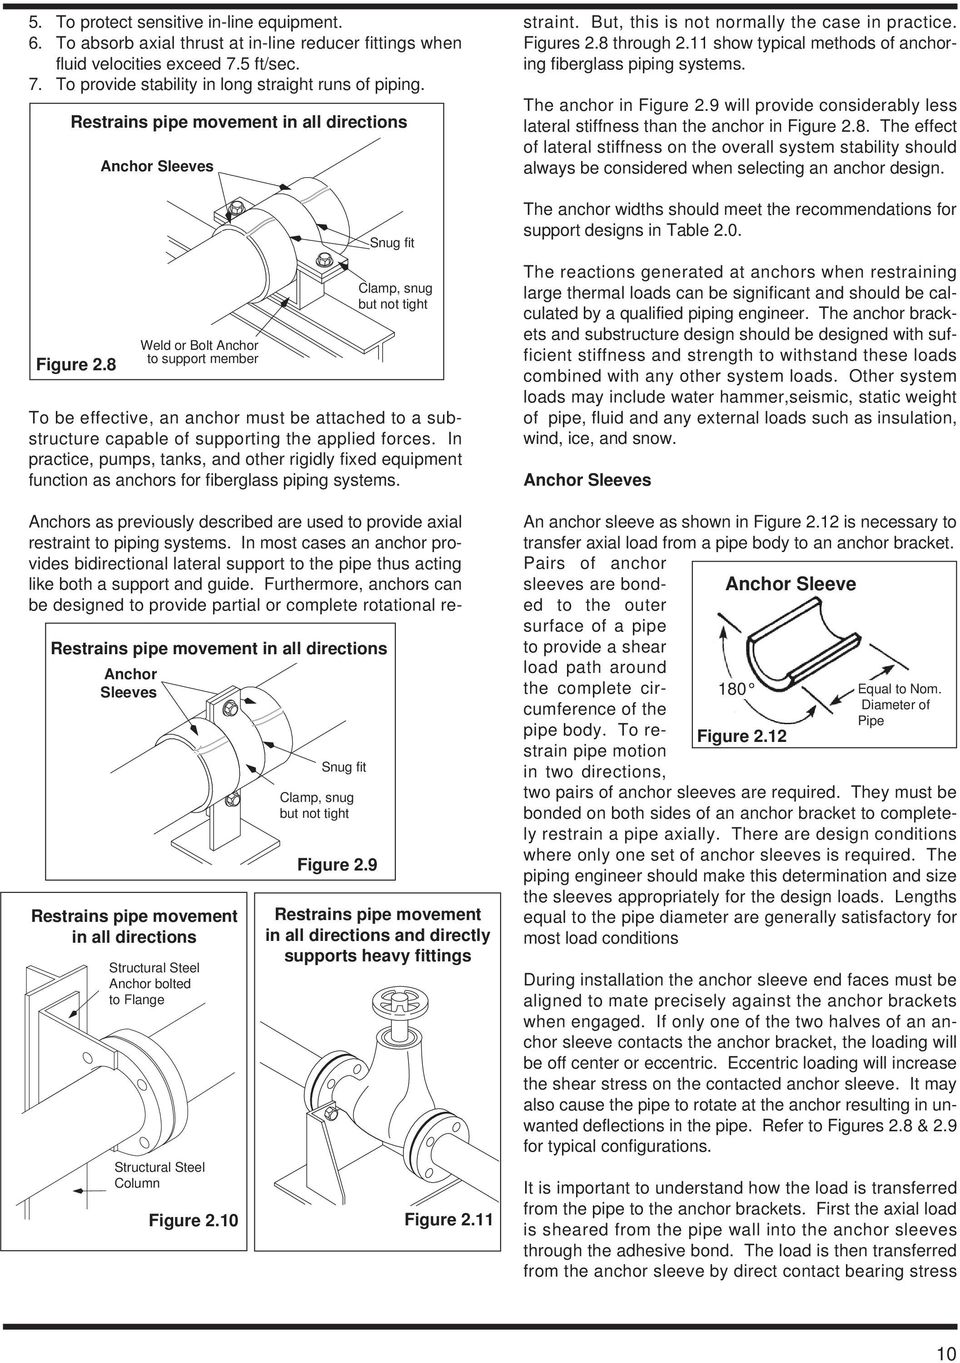 Engineering Piping Design Guide Pdf Layout Best Practices 8 Anchor Sleeves Weld Or Bolt To Support Member Be Effective An